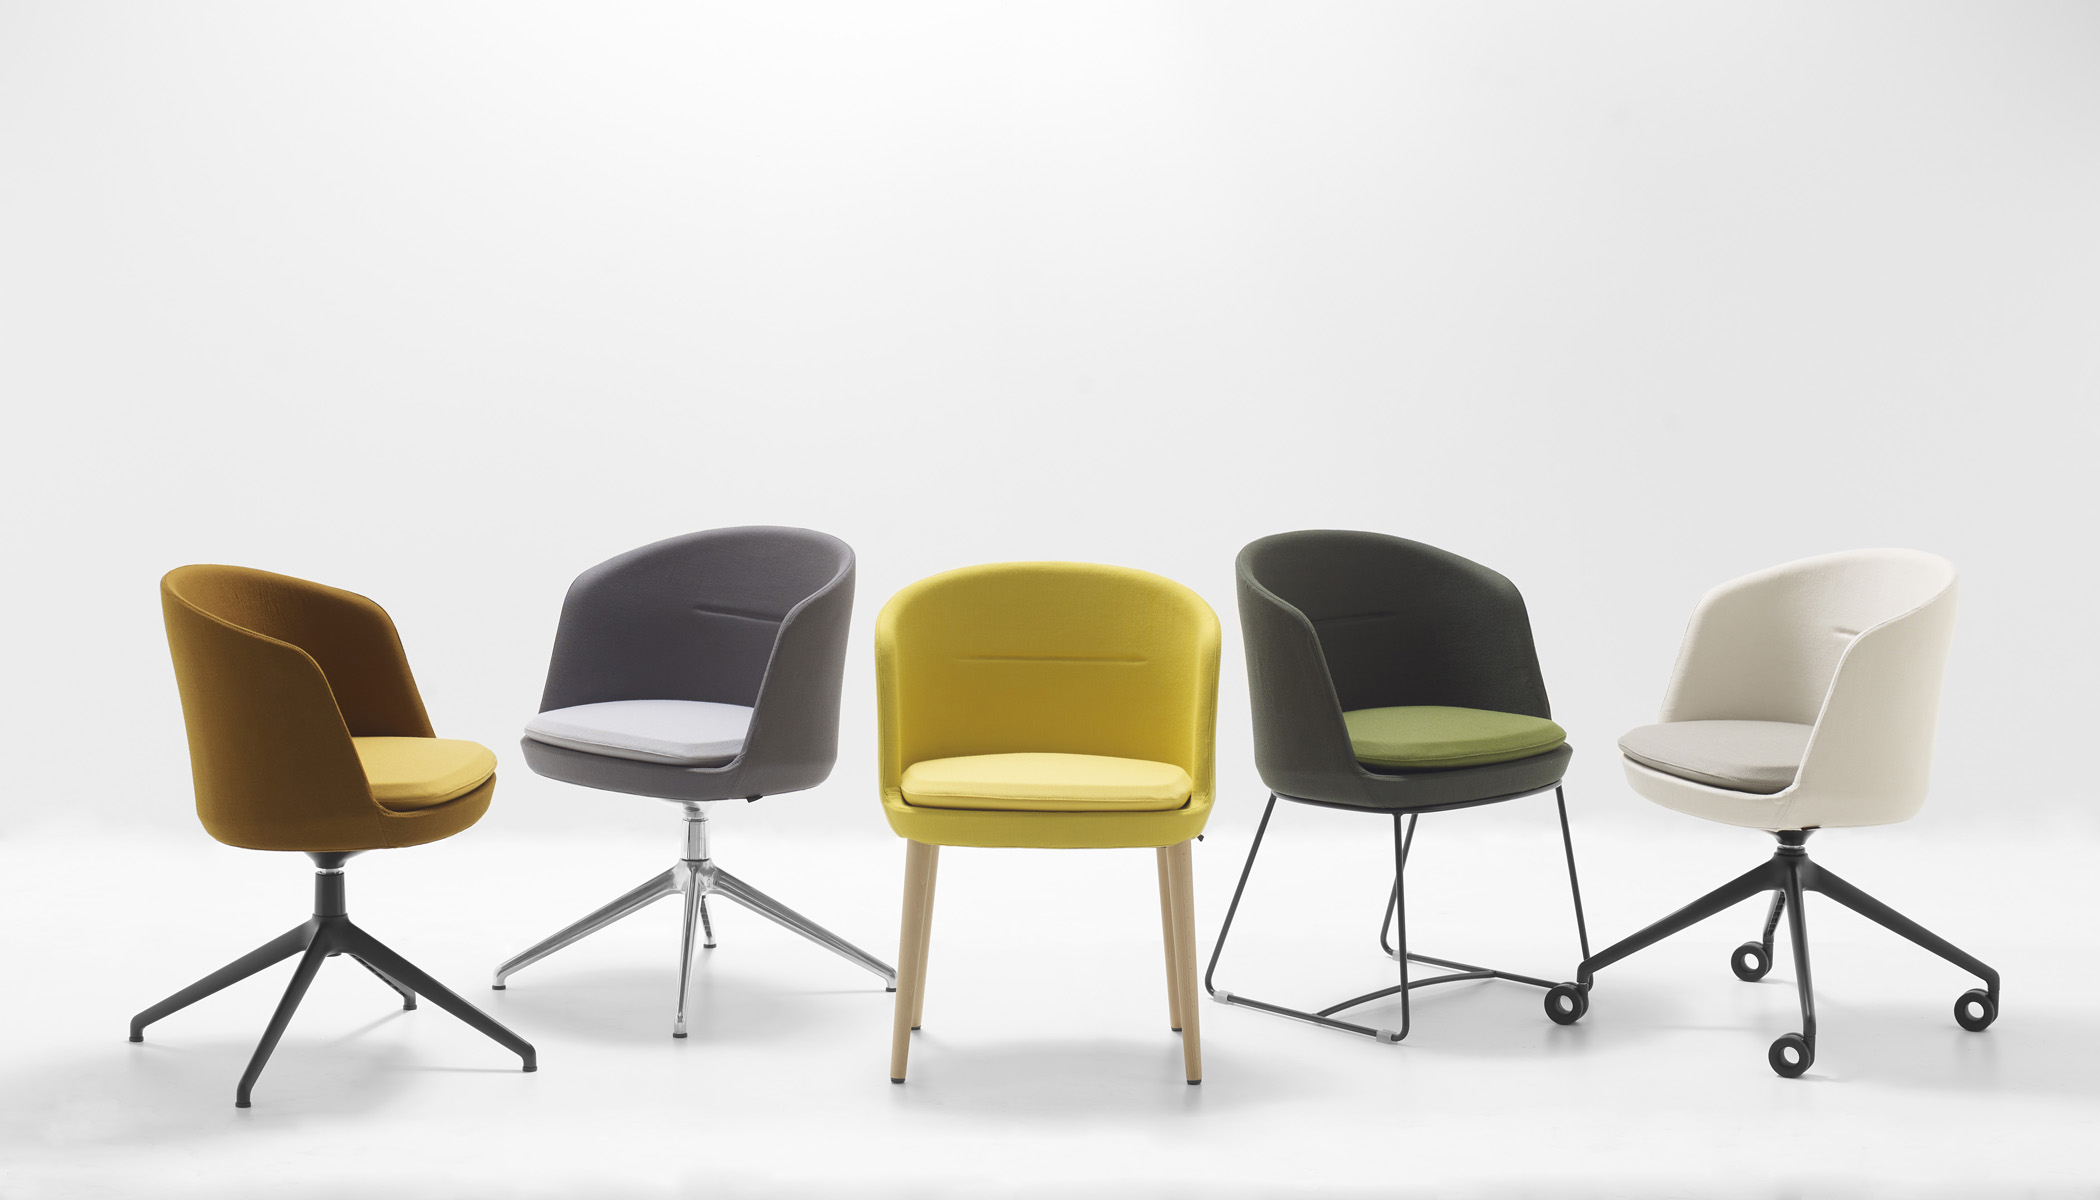 Guia Chair Collection 2021